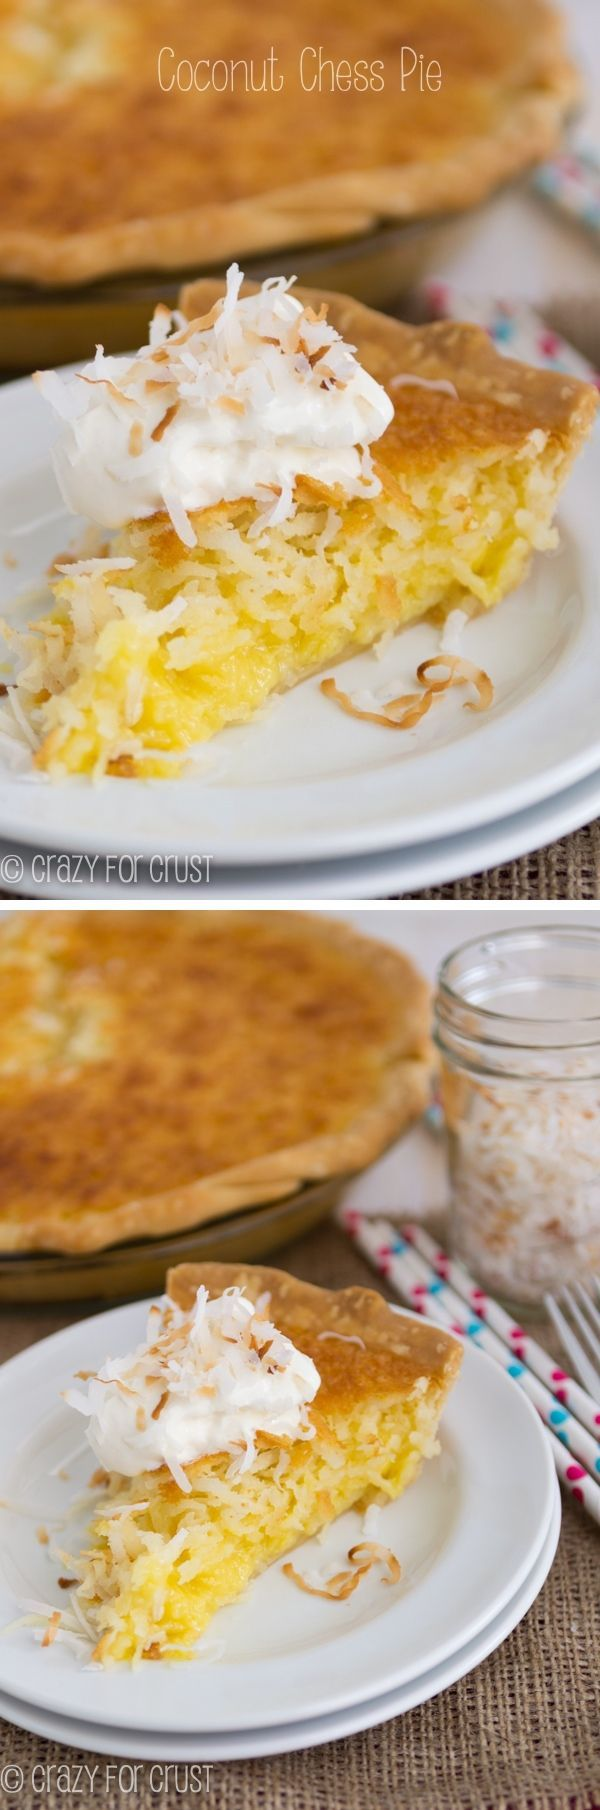 Coconut Chess Pie is easy to make and it's the perfect pie for Thanksgiving!